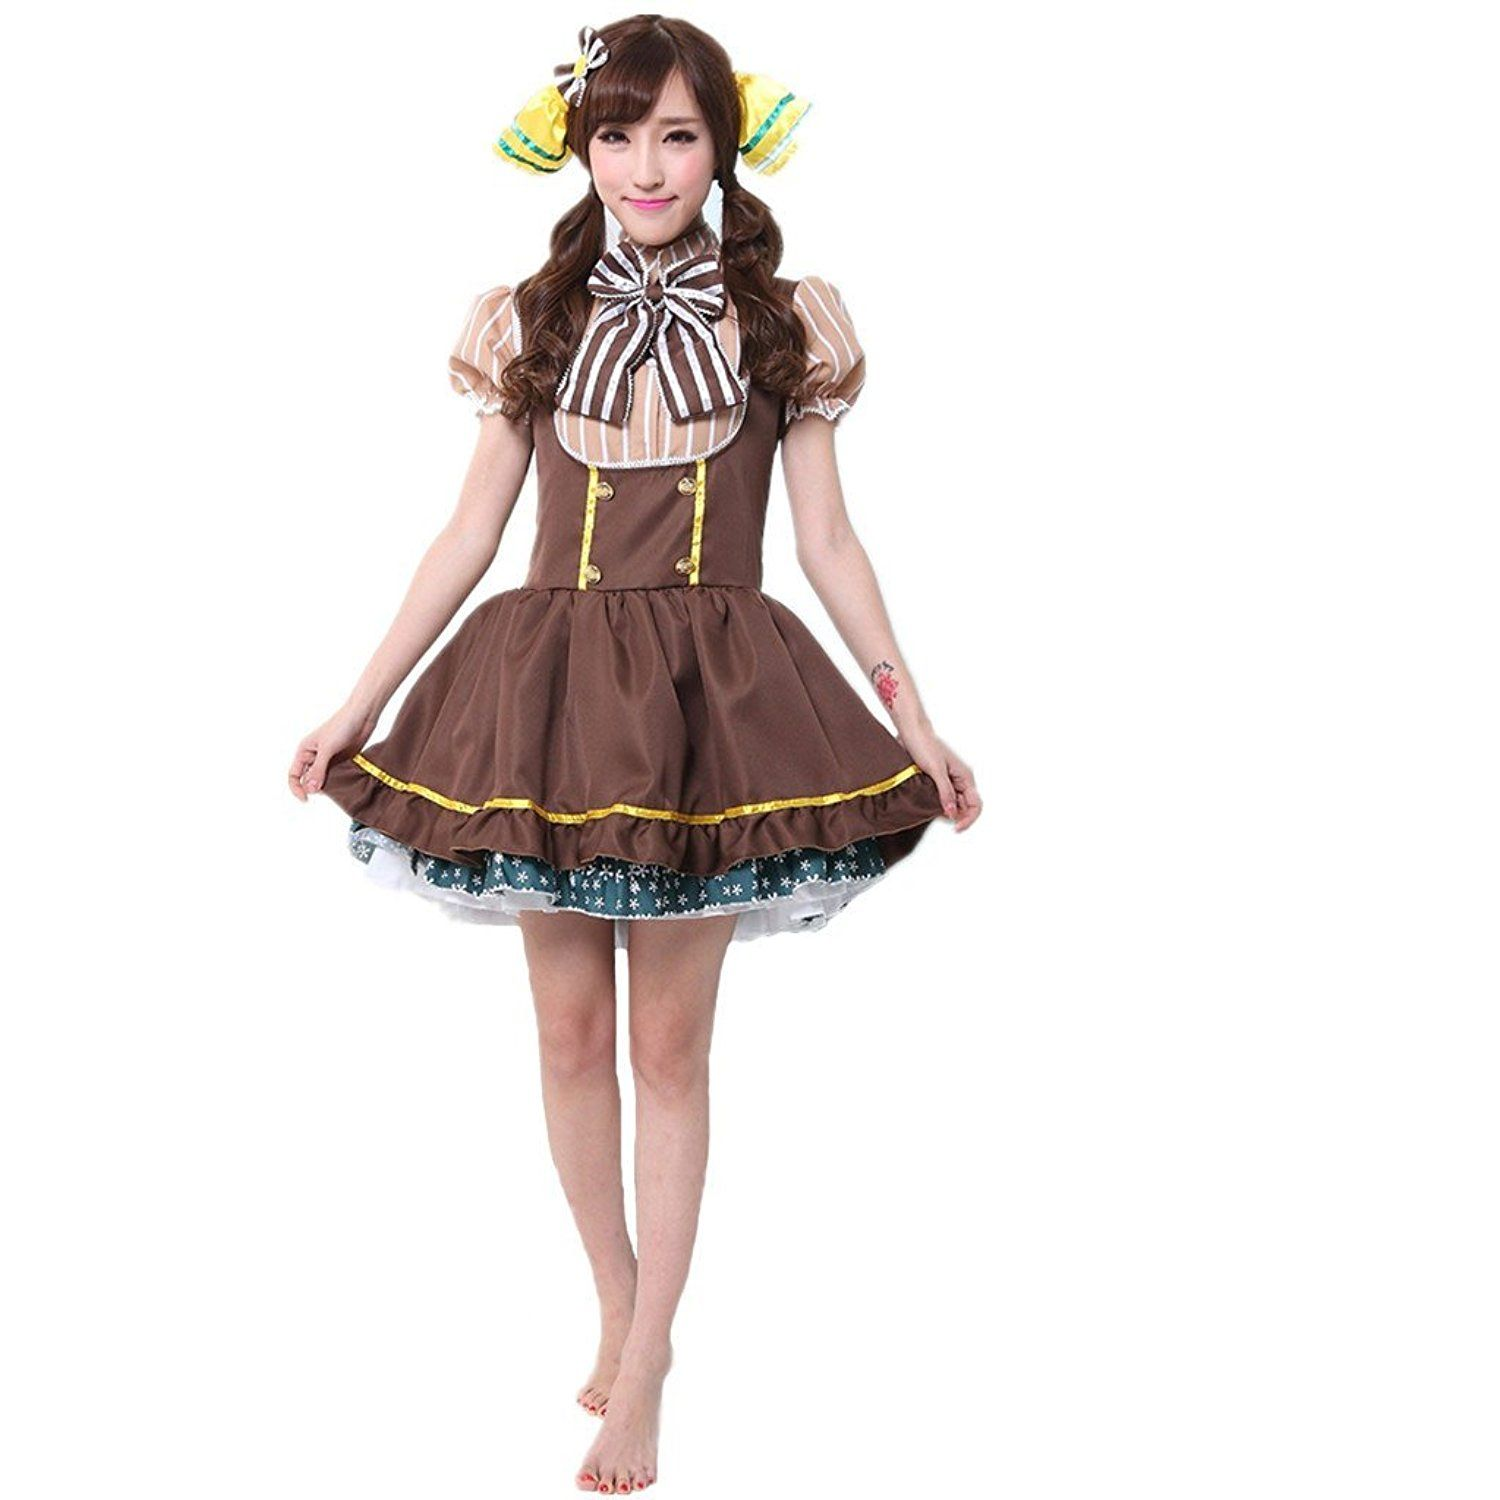 Lifeye Fashion Ladies Love Live Cute Maid Cosplay Anime